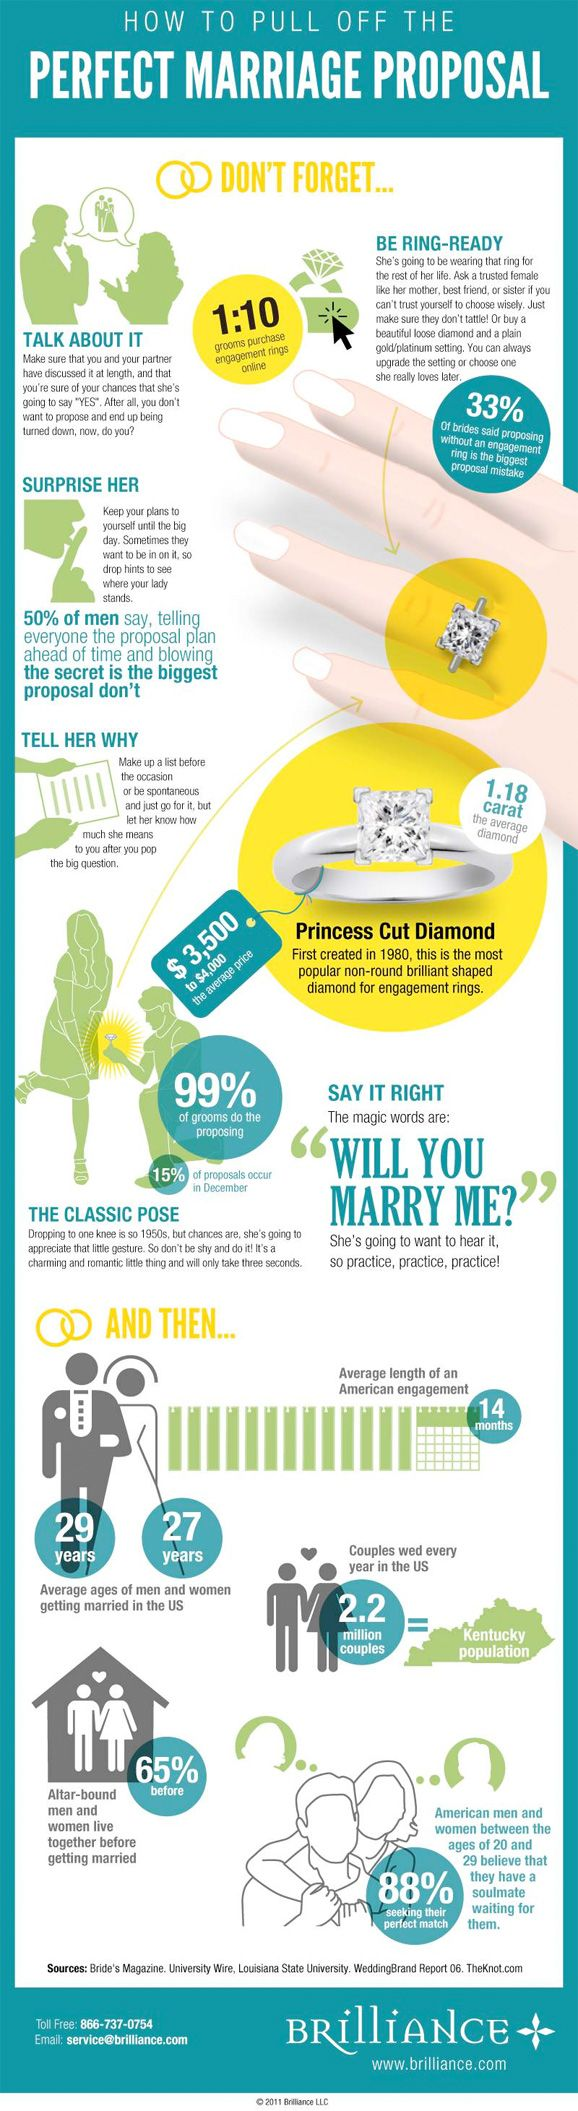 a marriage proposal guide - how to pull off the perfect marriage proposal